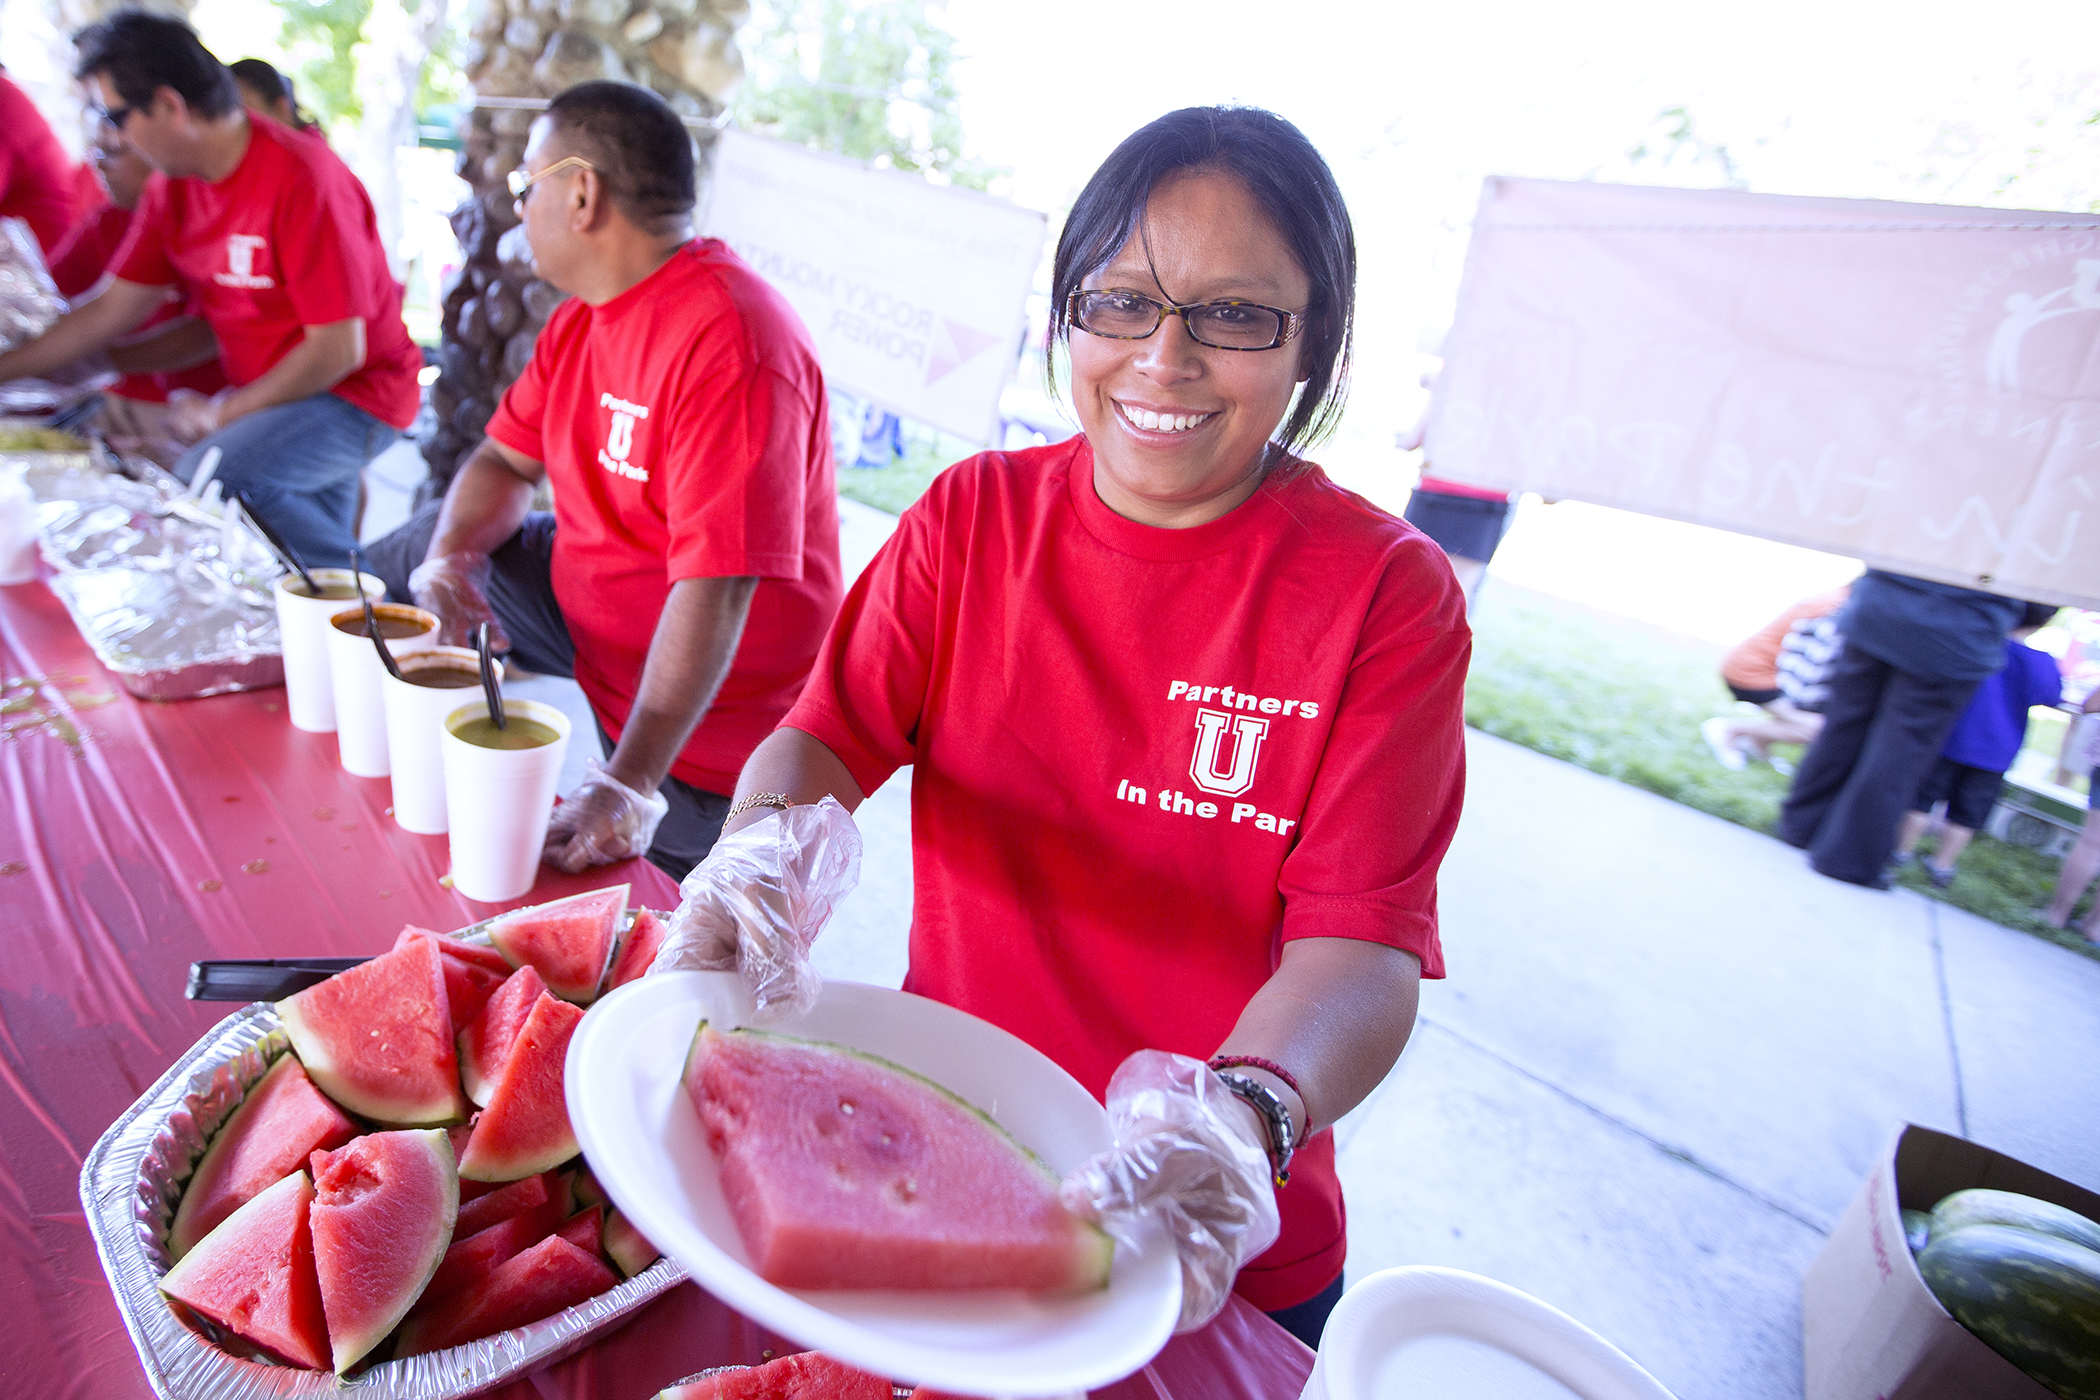 University Neighborhood Partners at the University of Utah celebrates the college graduation of nearly 300 west Salt Lake residents at its first Partners in the Park event of the season.